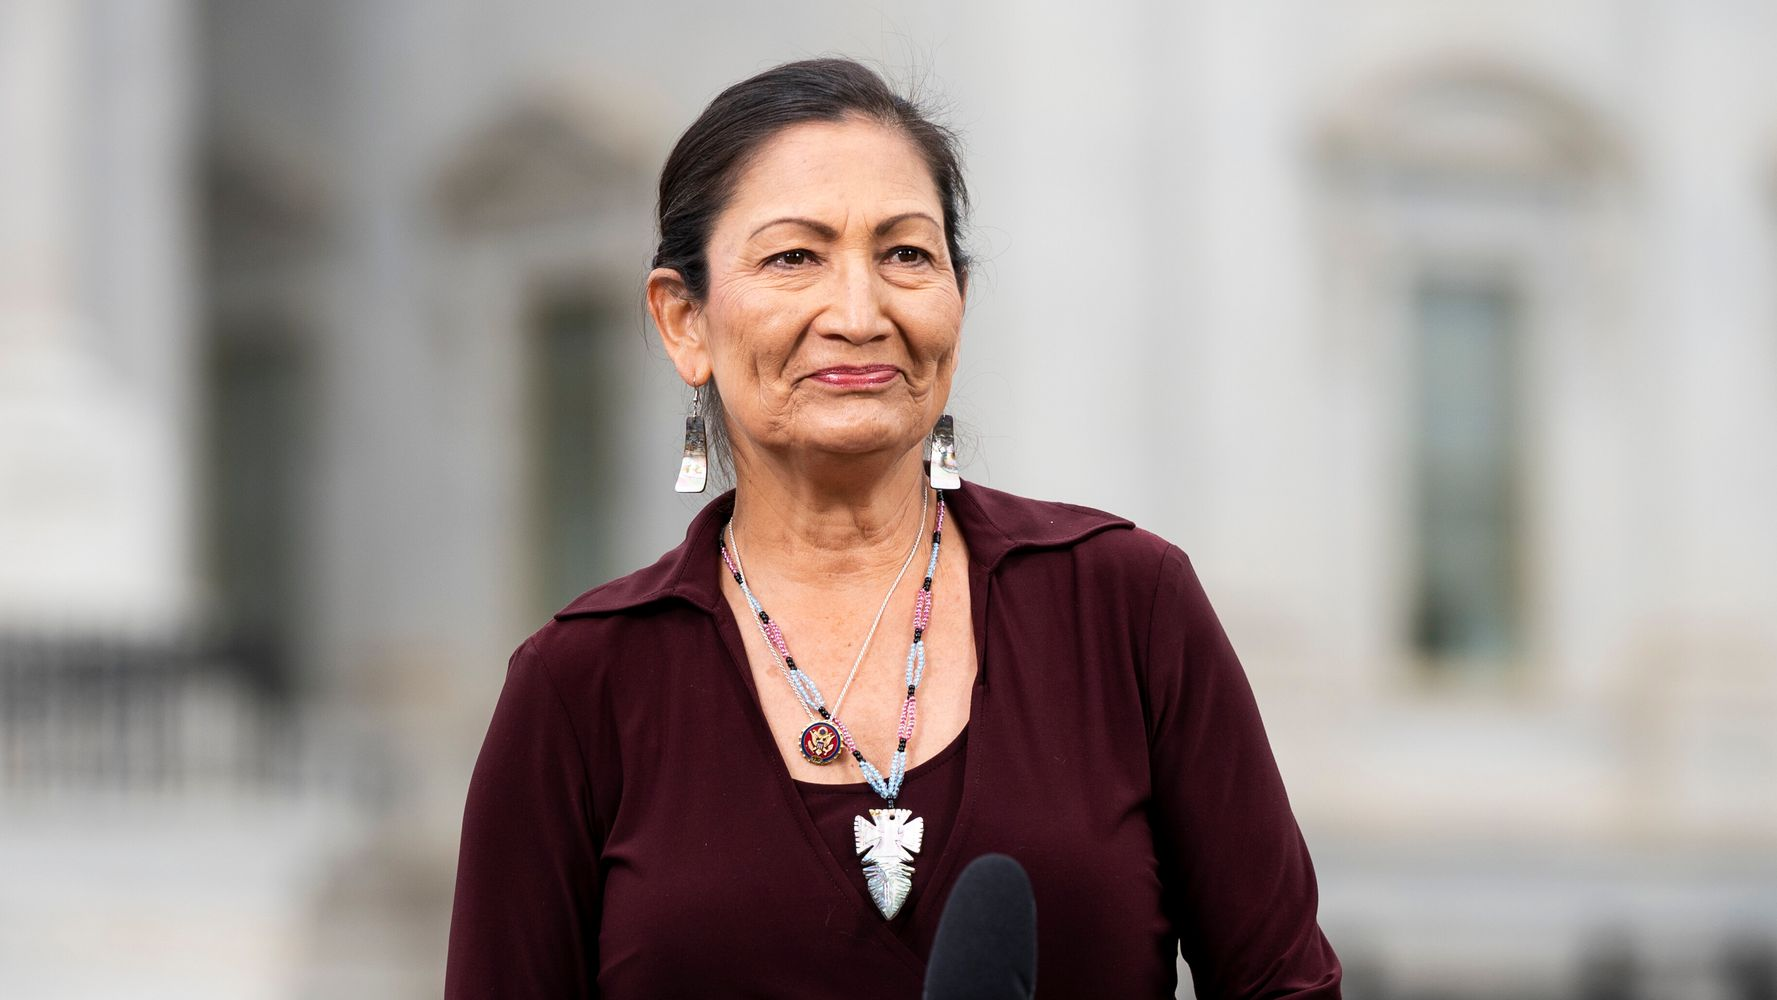 Deb Haaland: 'Of Course' I'd Be Interested In Being Biden's Interior Secretary